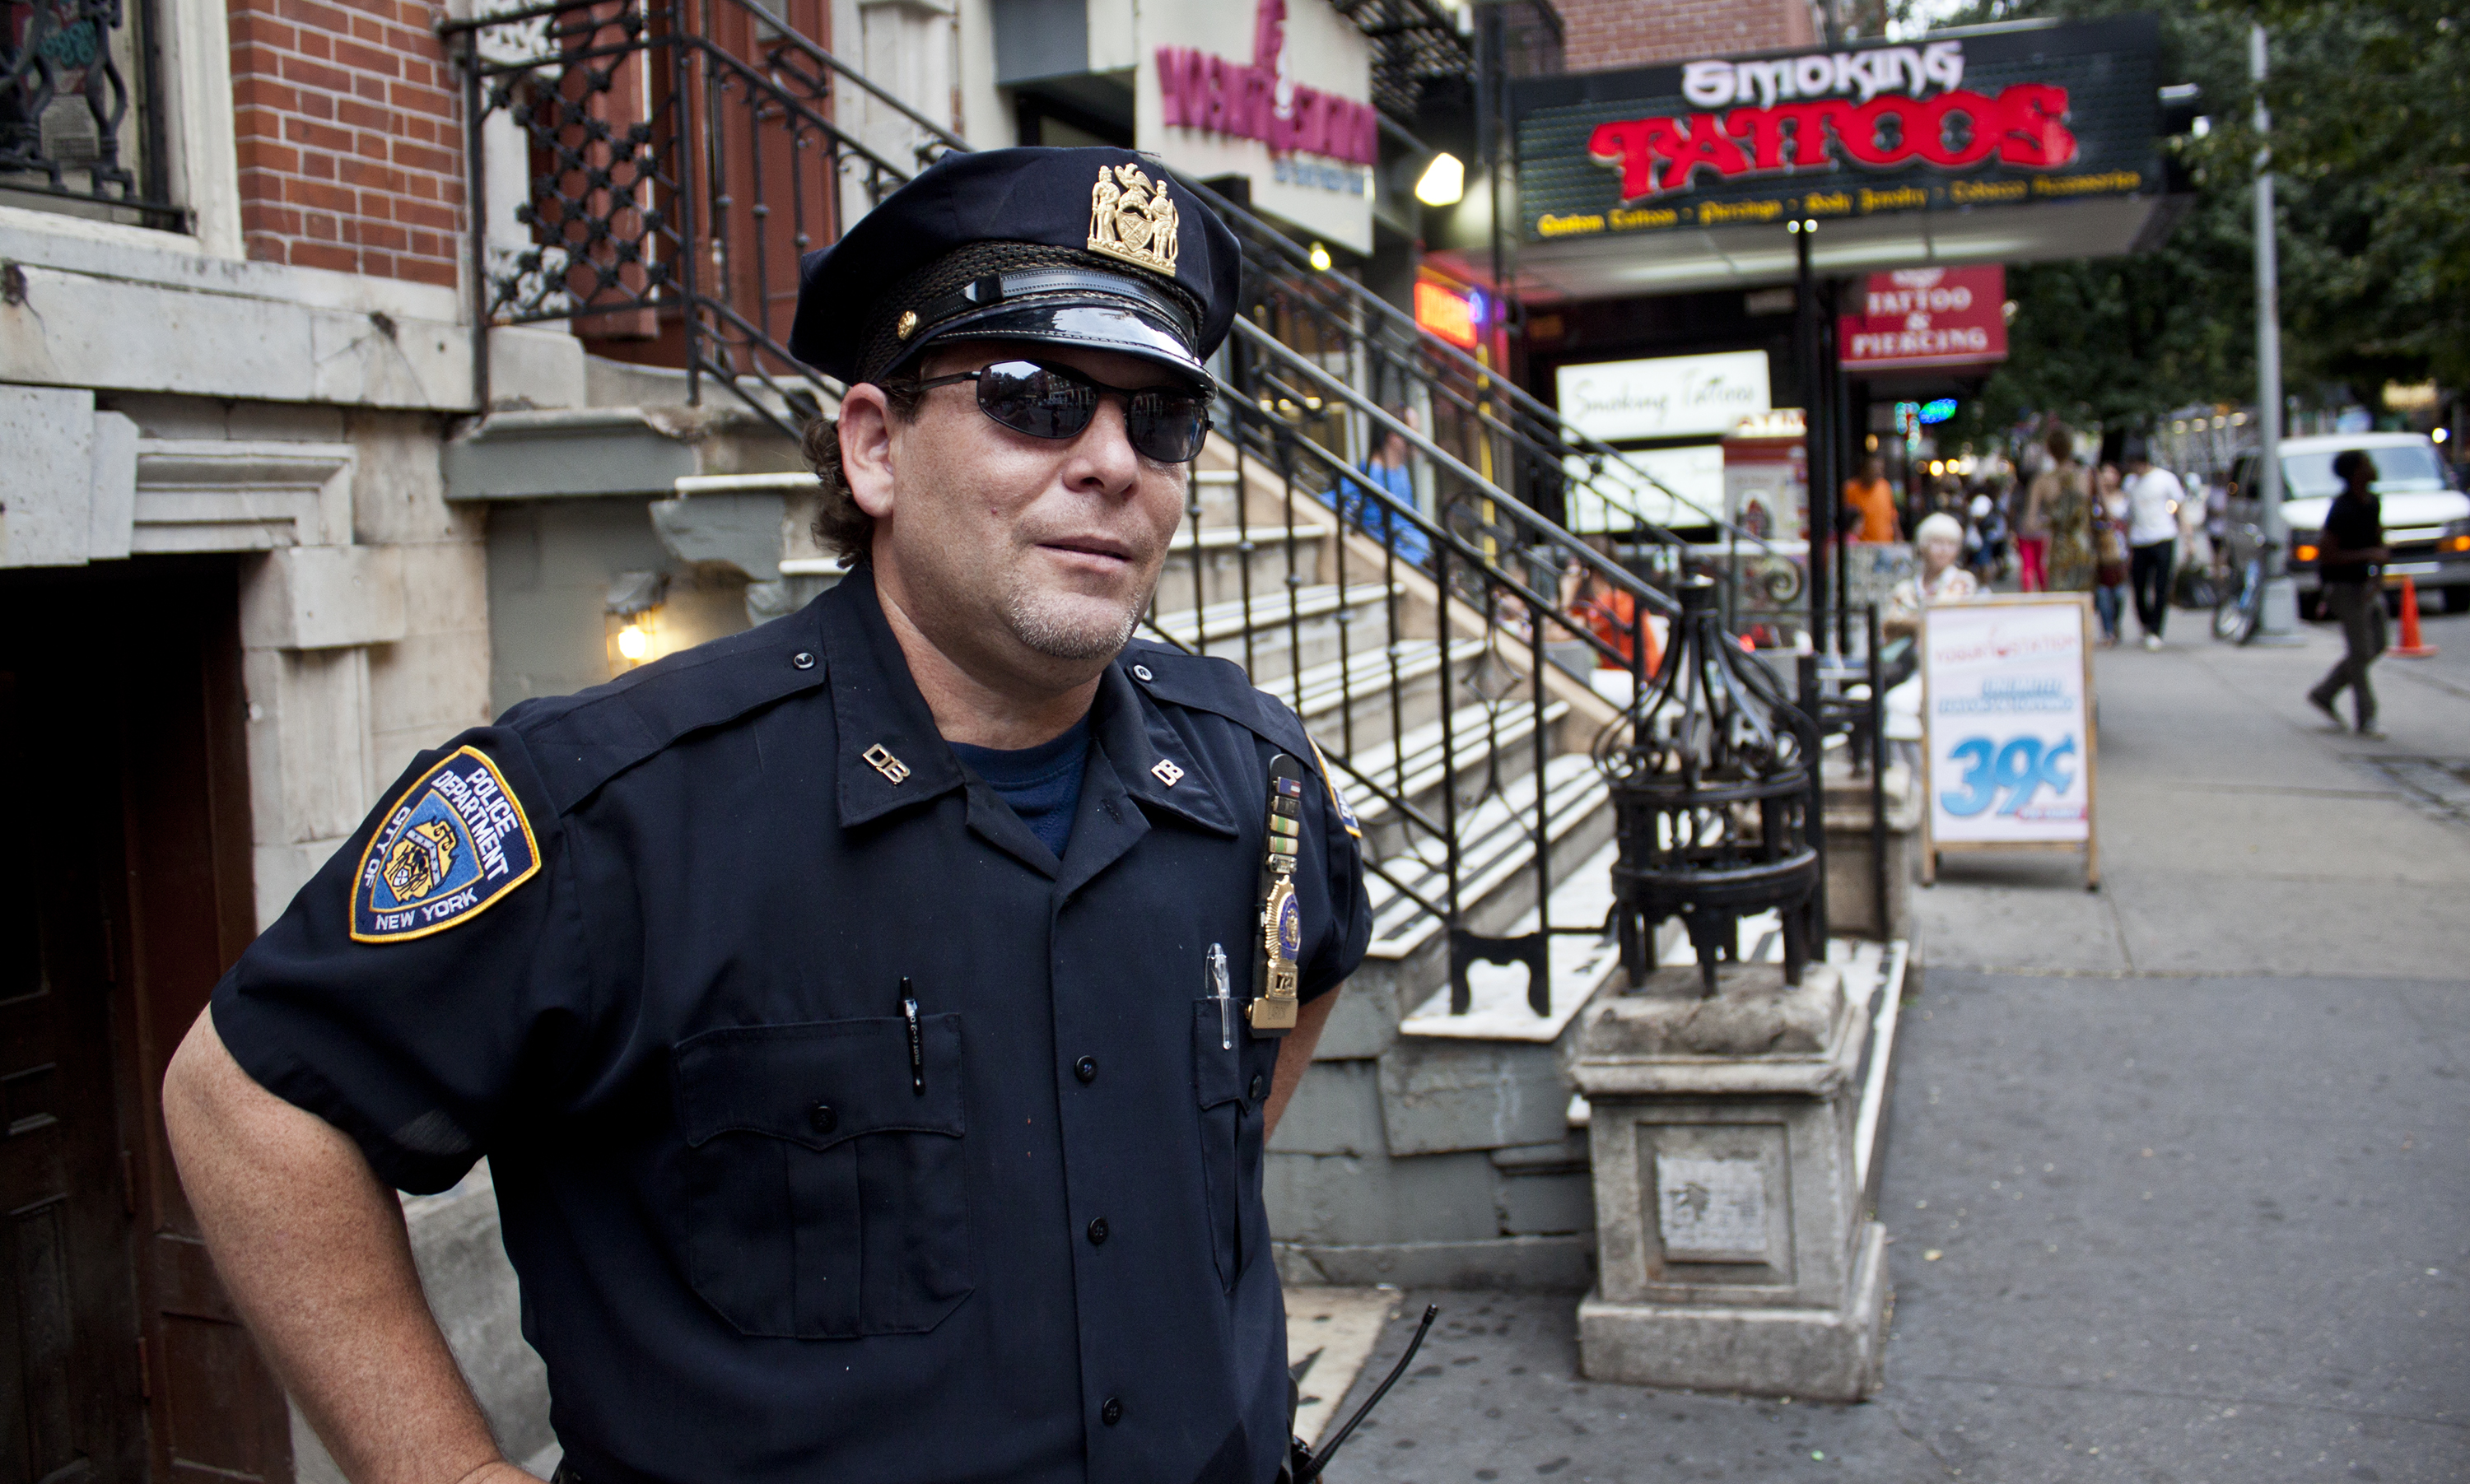 Keith Larick pictured in New York, N.Y., on Aug. 11, 2012. (Steve Silva)